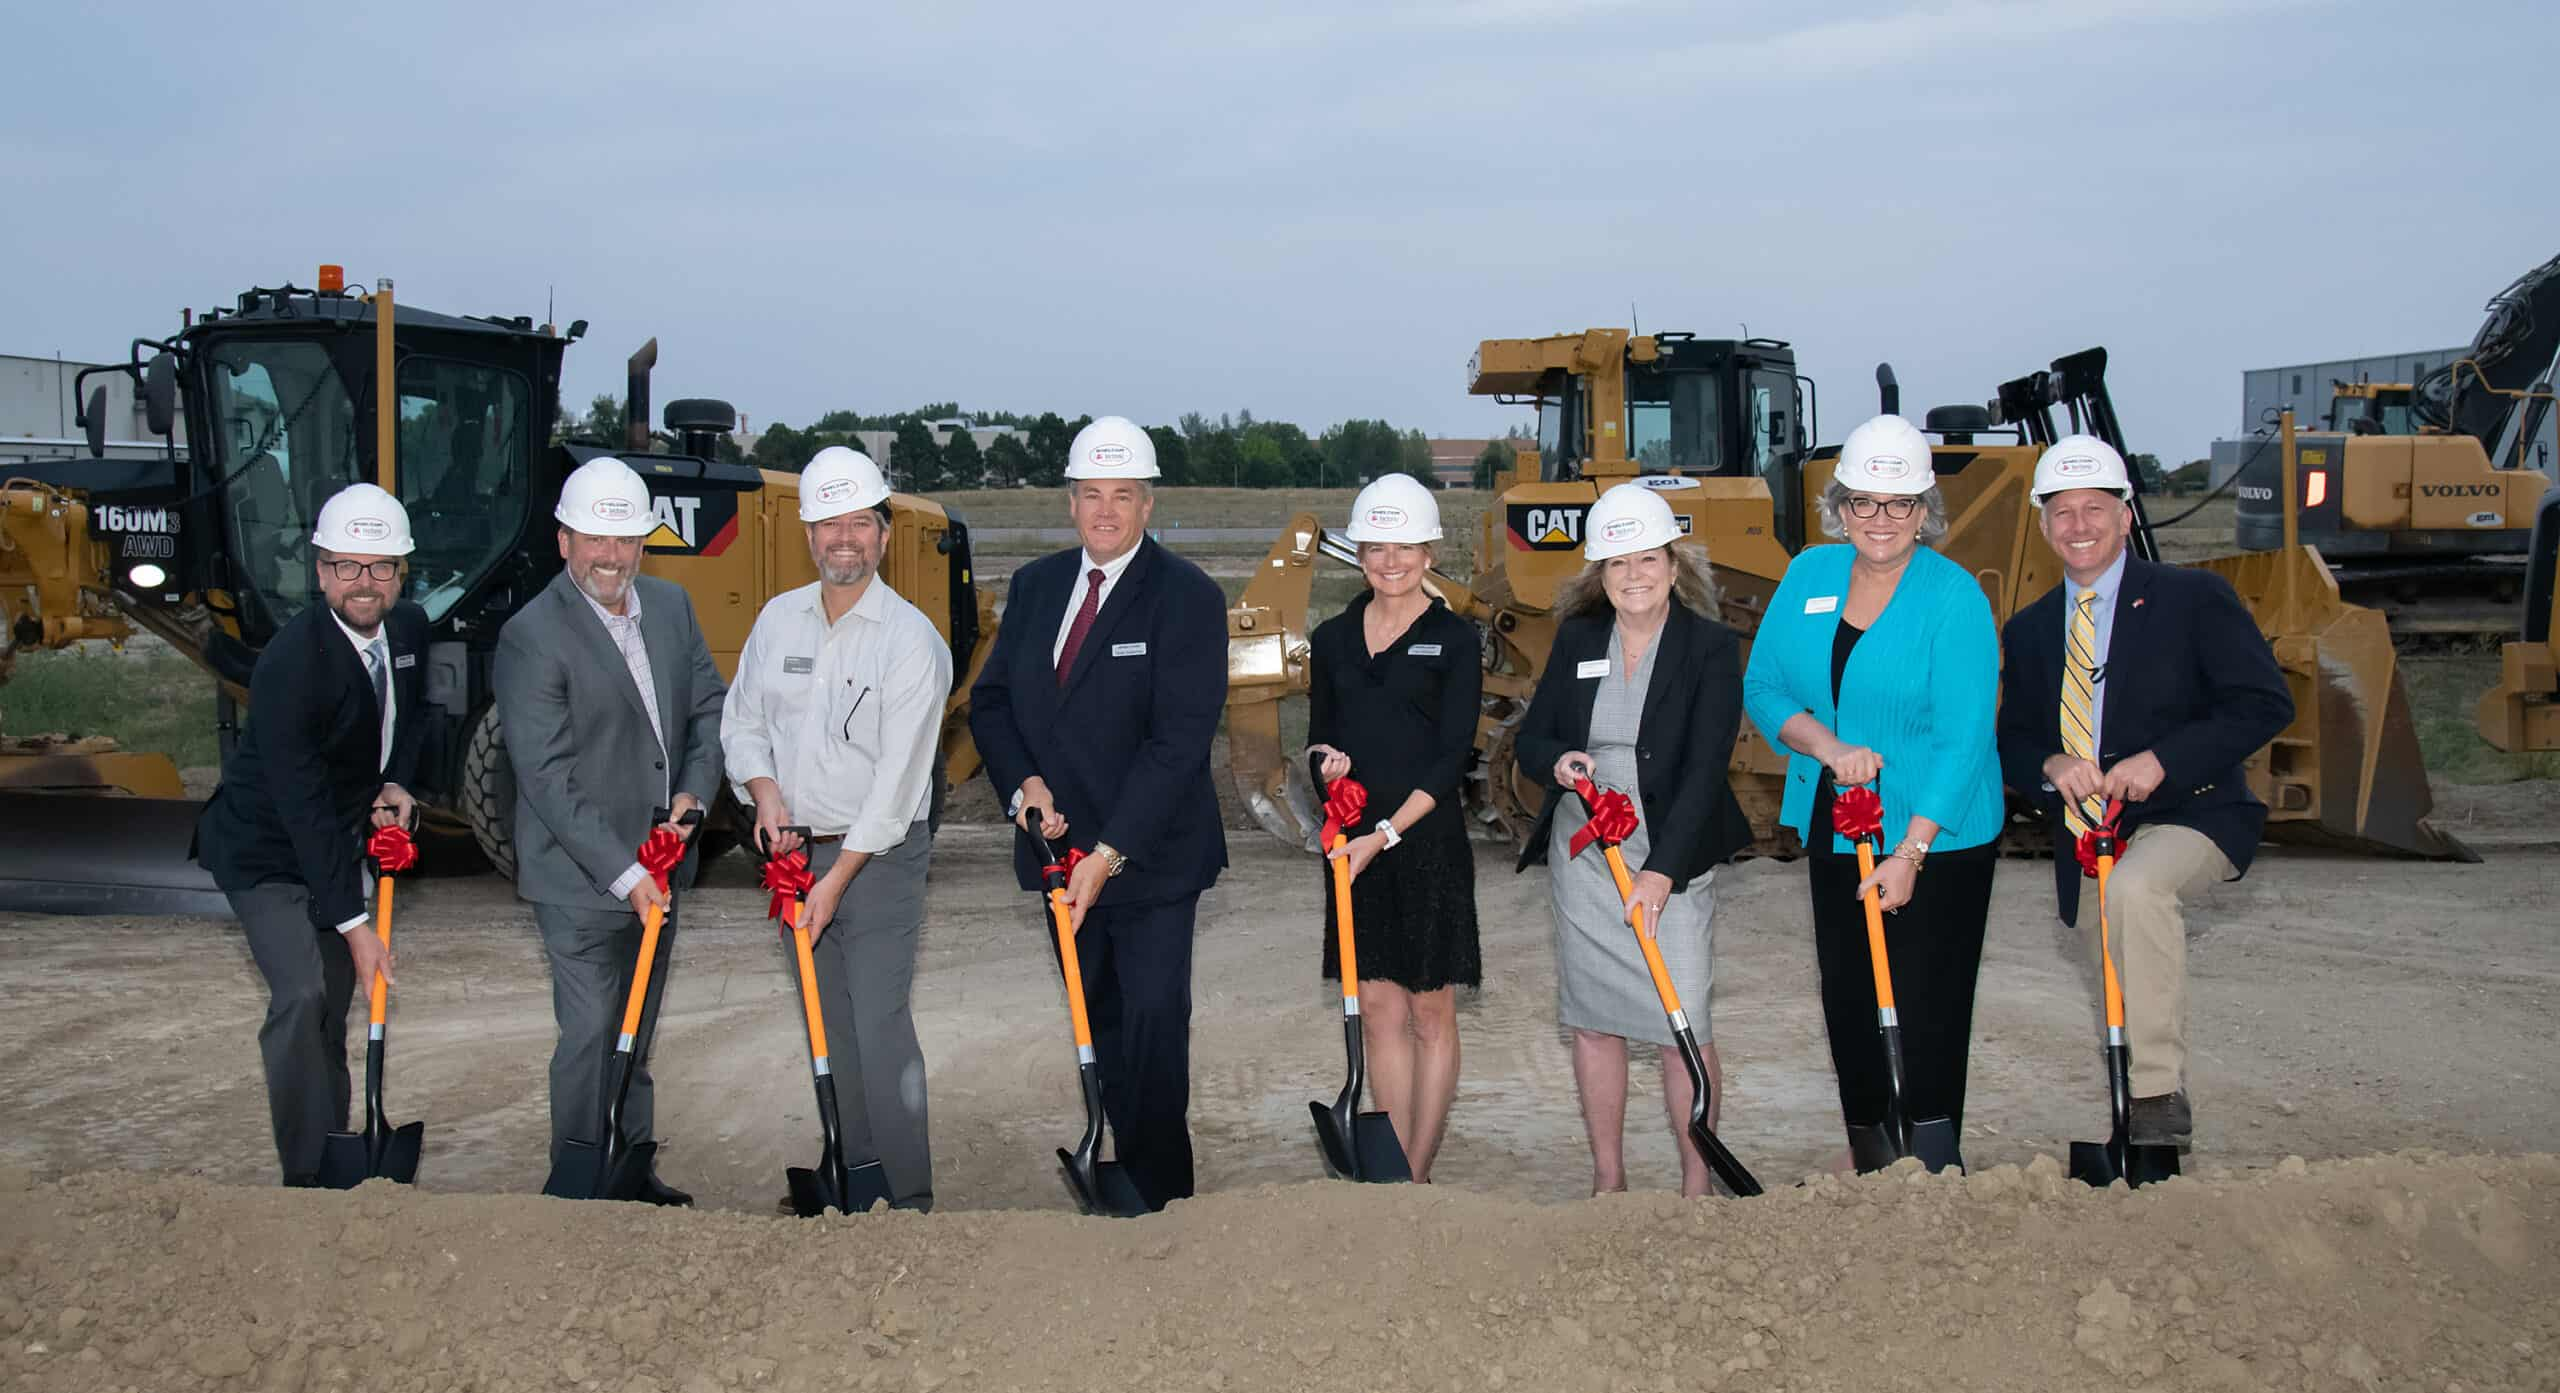 Sheltair celebrates 1 year at BJC with a ceremonial groundbreaking of their new hangar expansion.